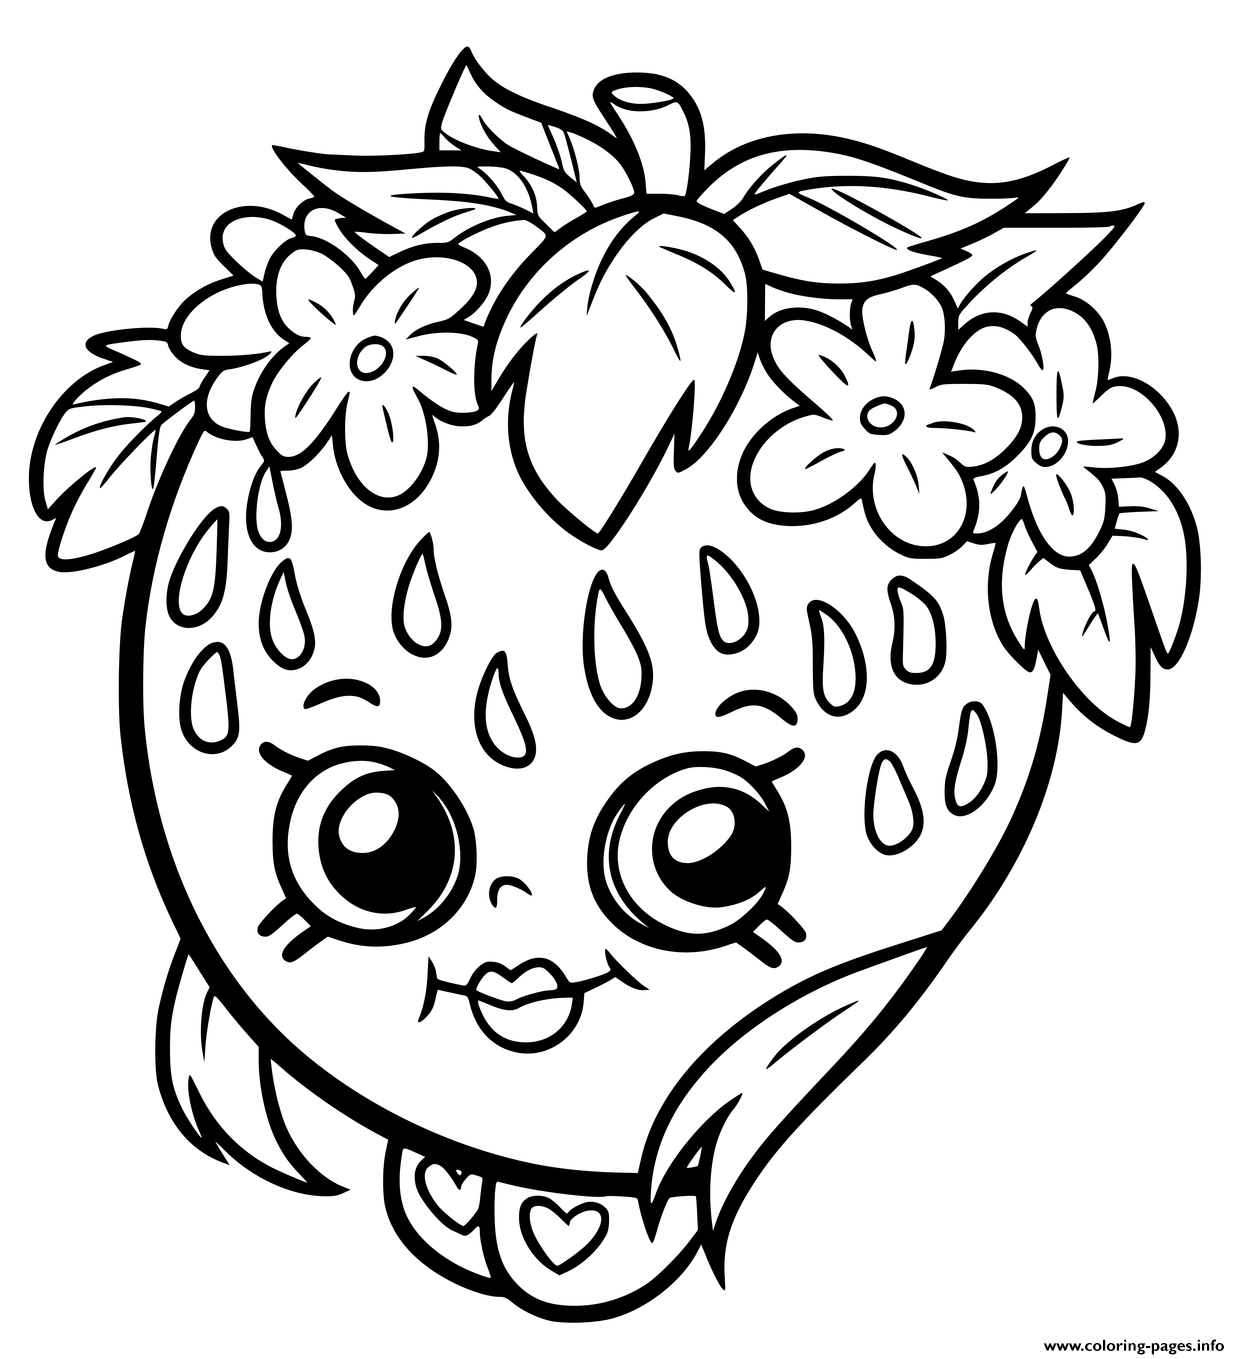 Coloring games of shopkins - Print Shopkins Strawberry Smile Coloring Pages